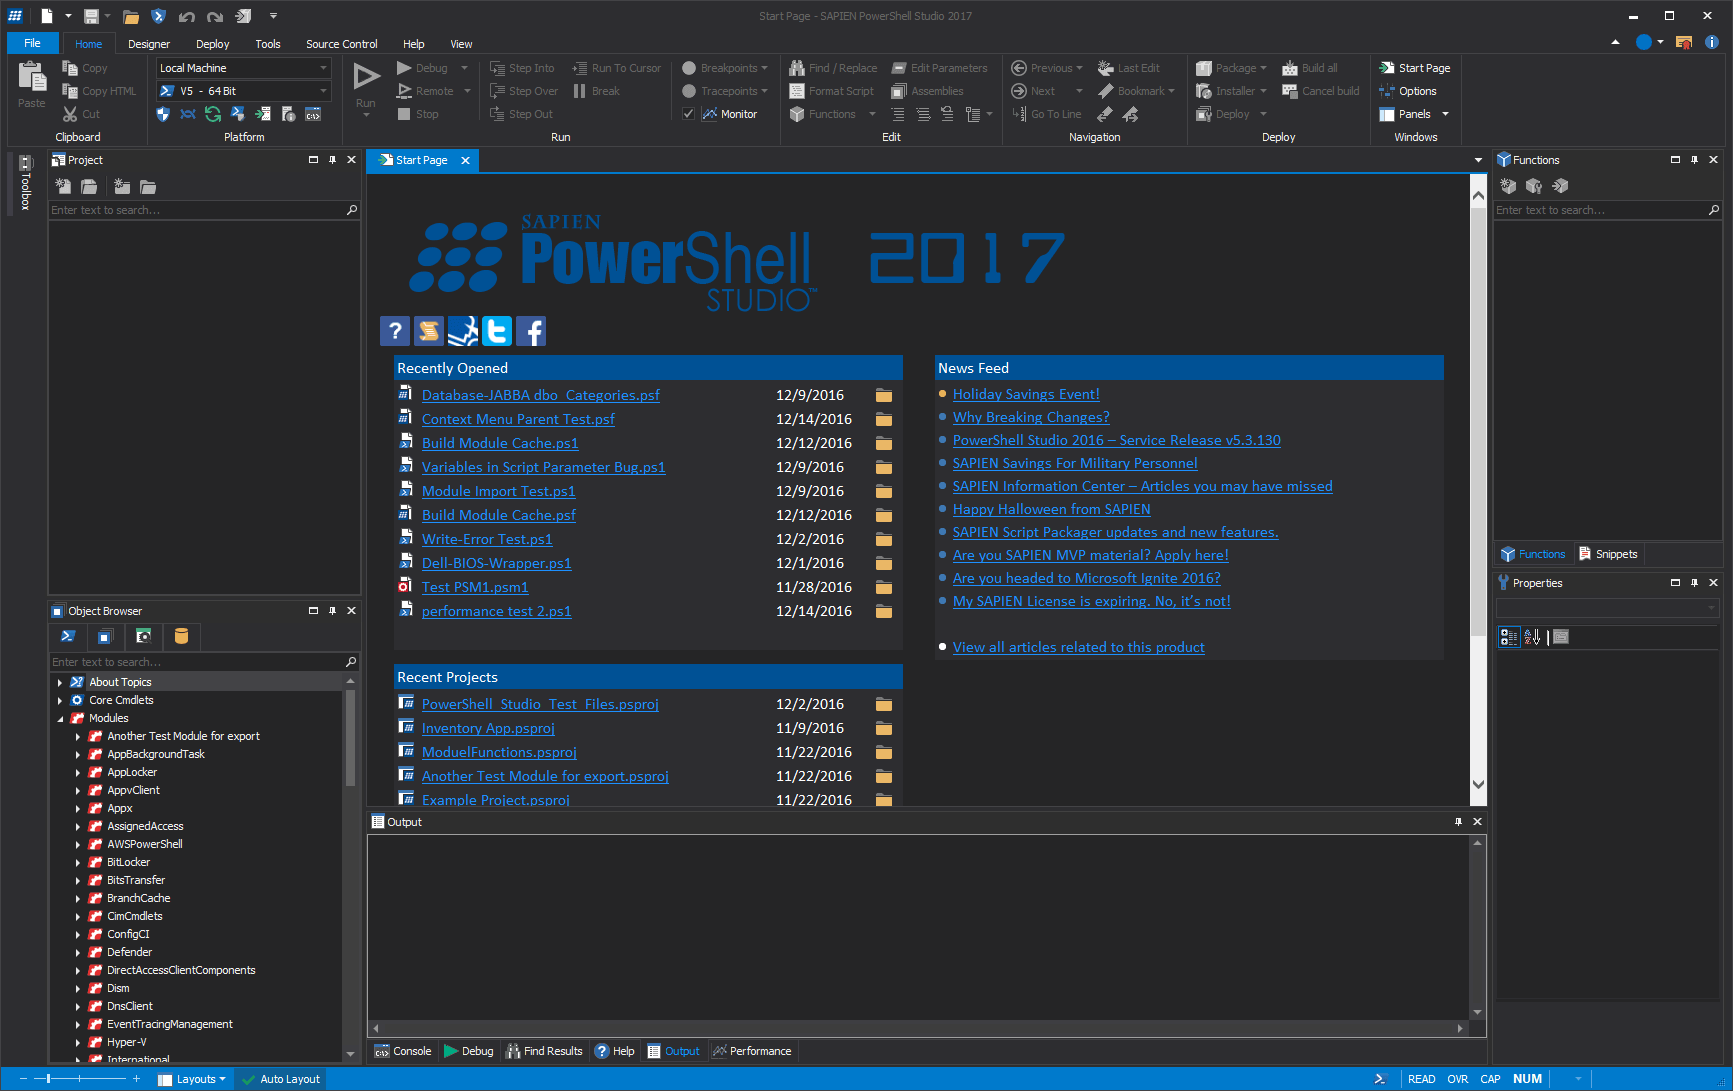 Download Gratis PowerShell Studio 2017 Terbaru Full Version